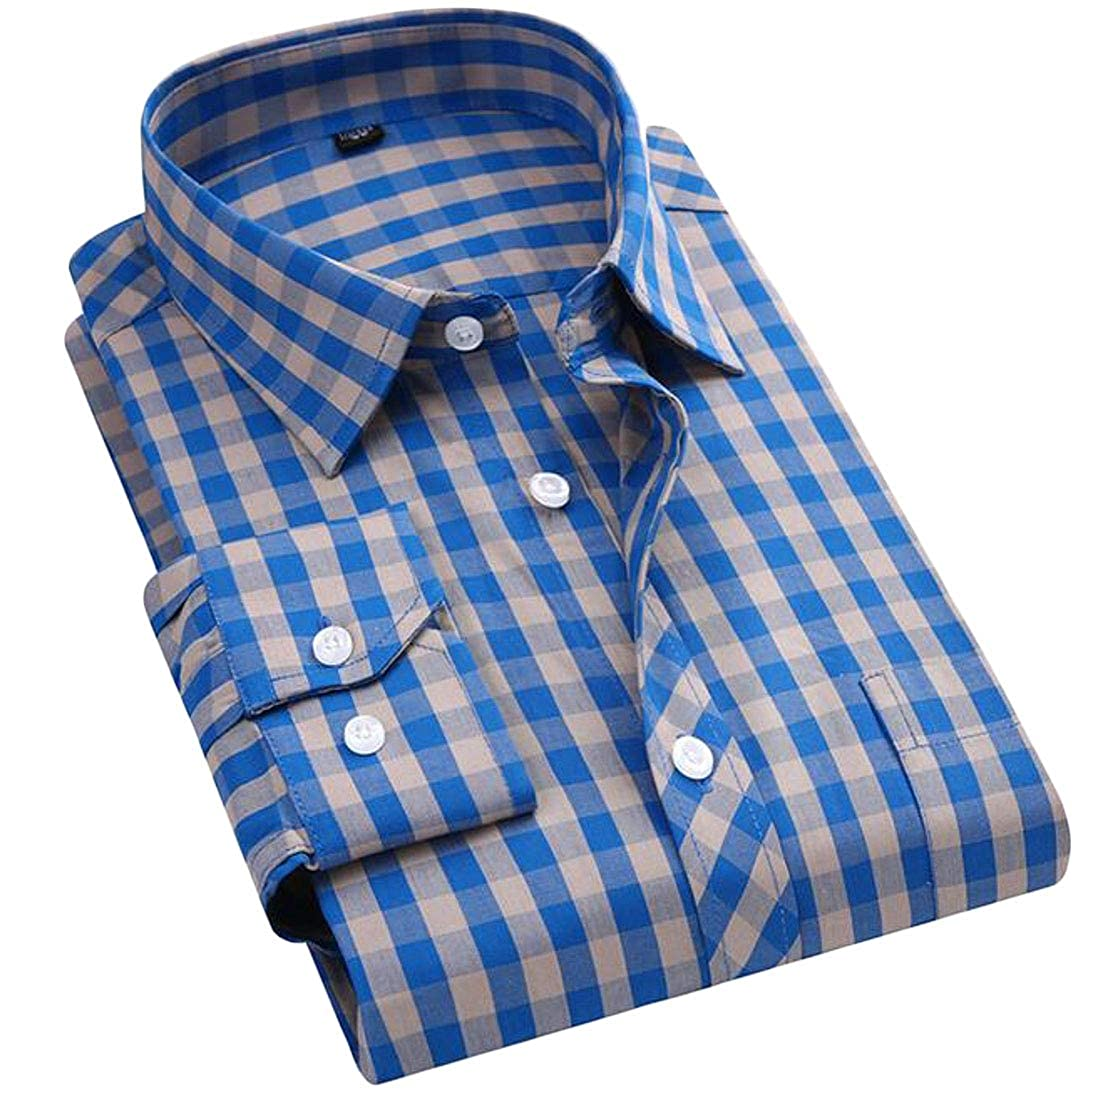 Sweatwater Mens Regular Fit Long Sleeve Button Down Check Slim Fit Buffalo Shirts